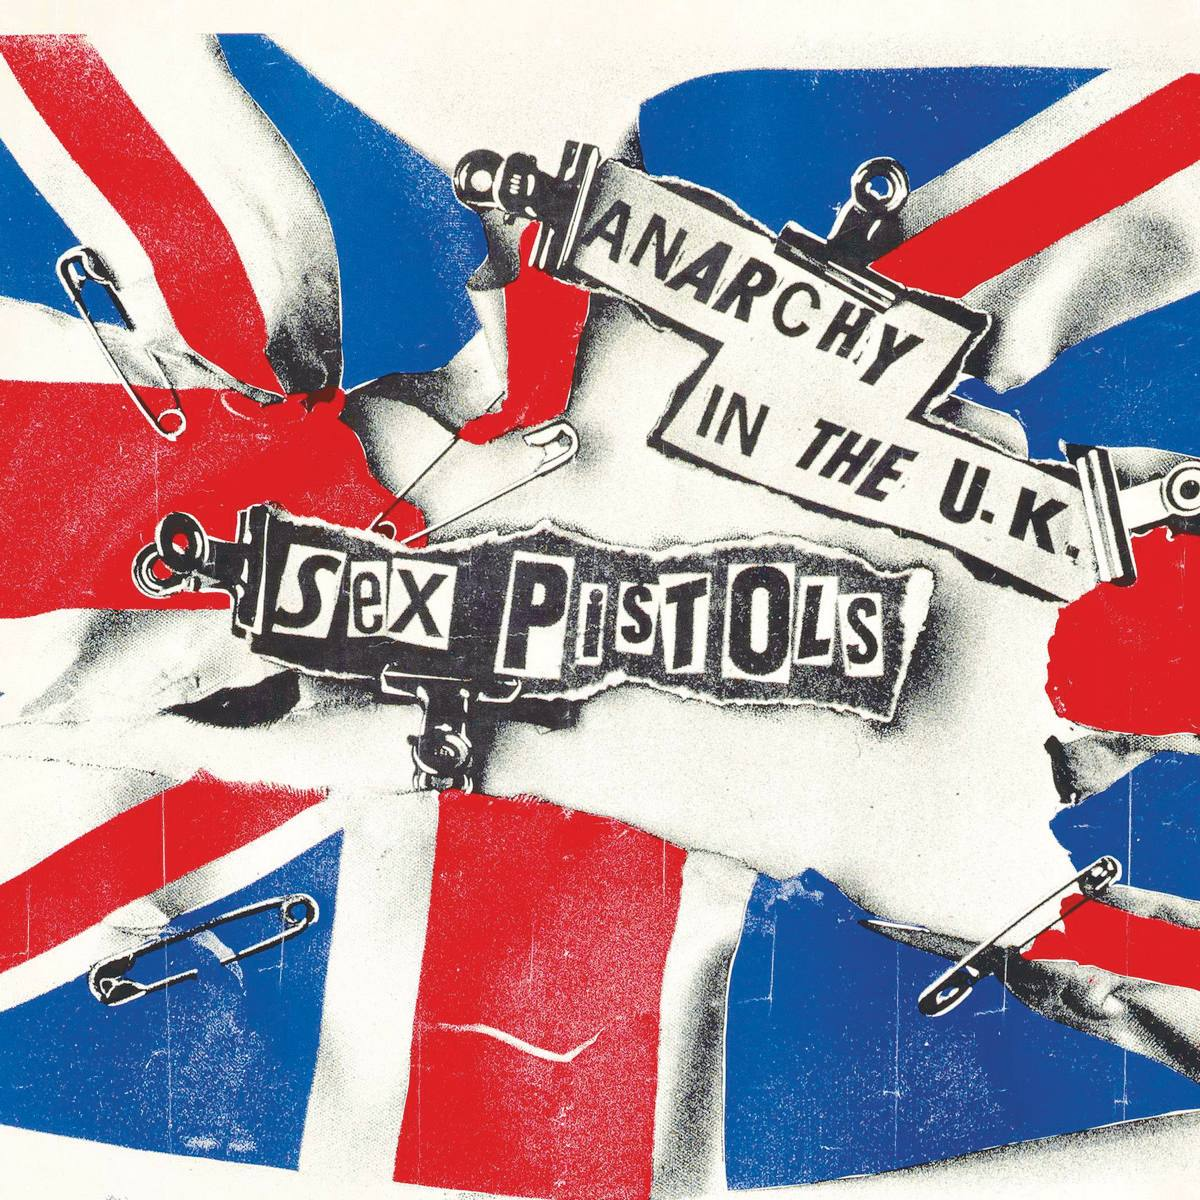 Anarchy in the usa sex pistols